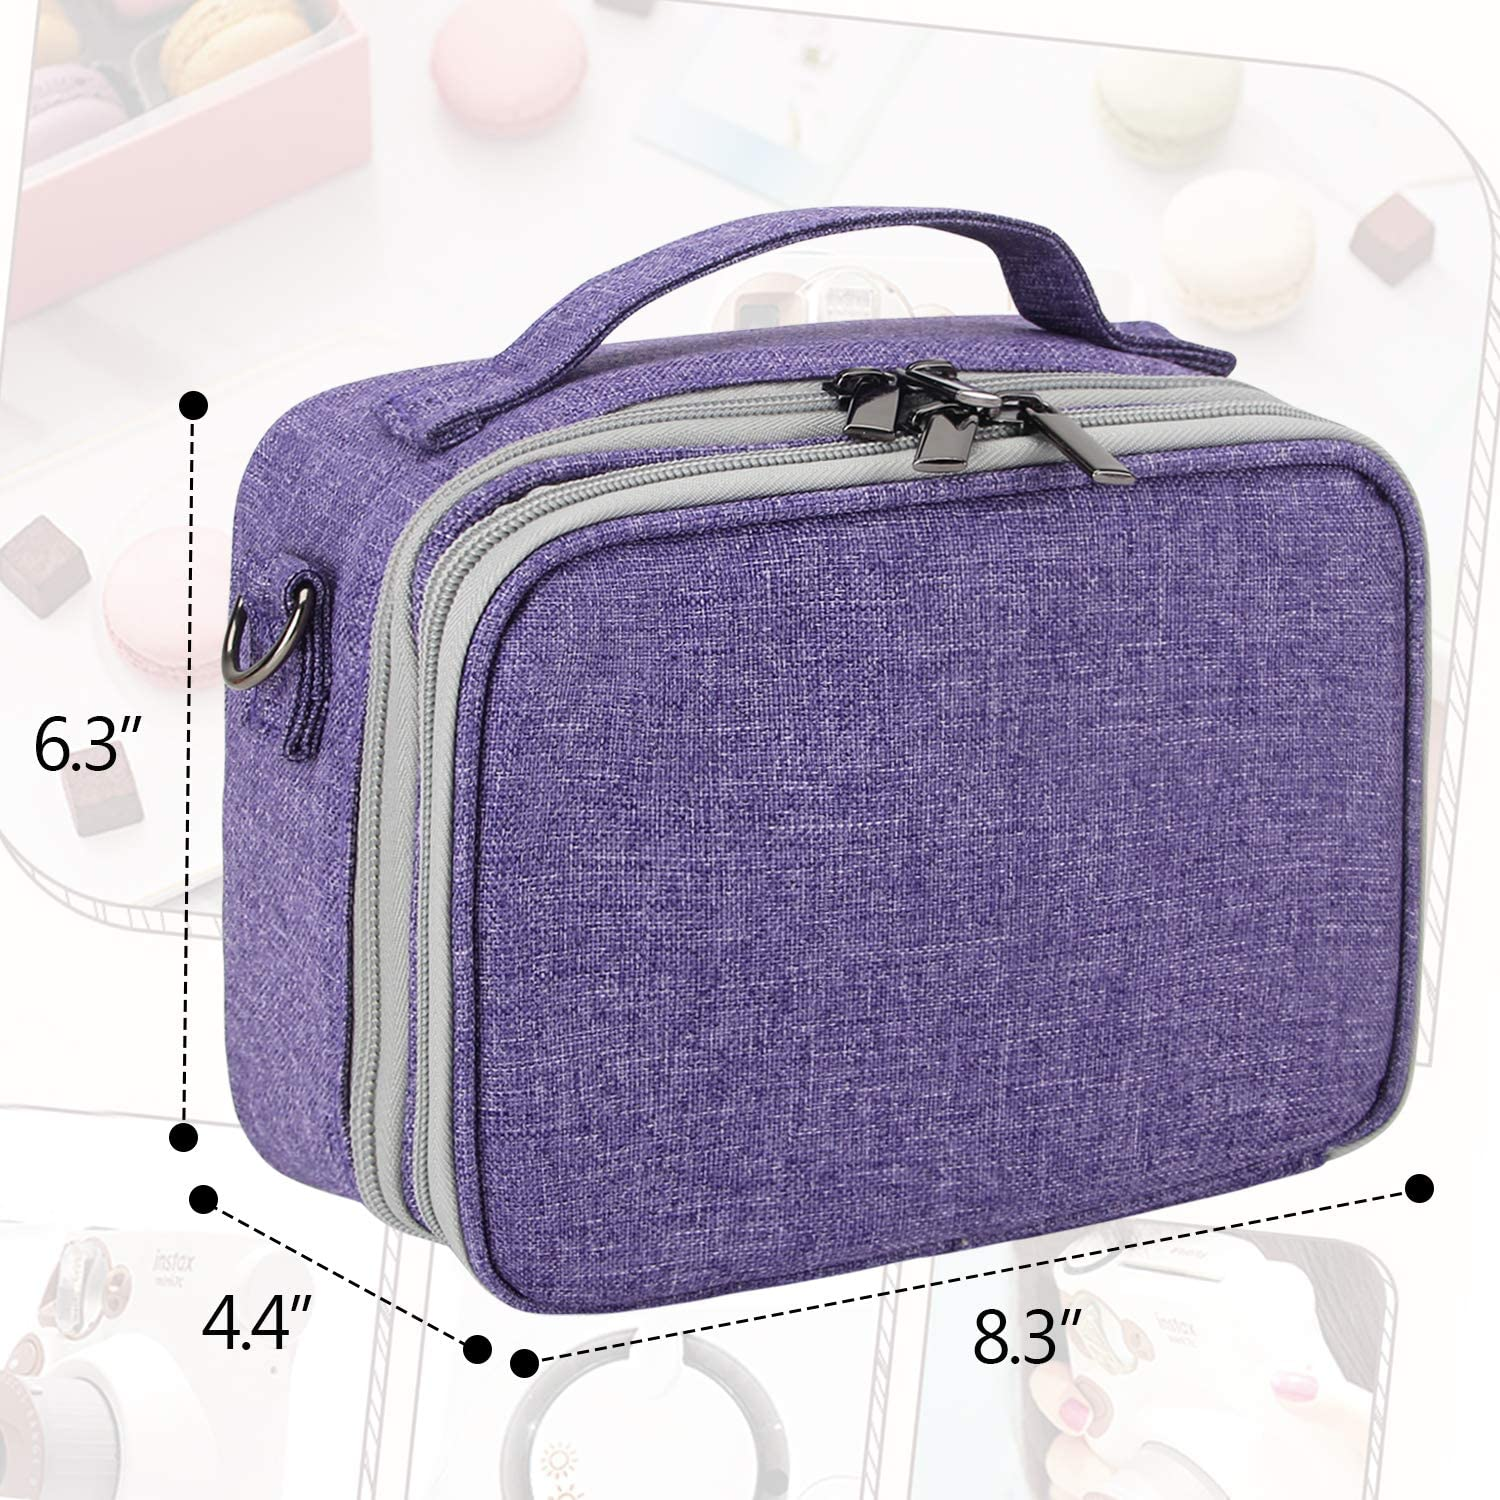 Teamoy Camera Case Compatible with Fujifilm Instax Mini 9 Bag Only Purple Travel Carrying Storage Bag for Instant Camera and Accessories